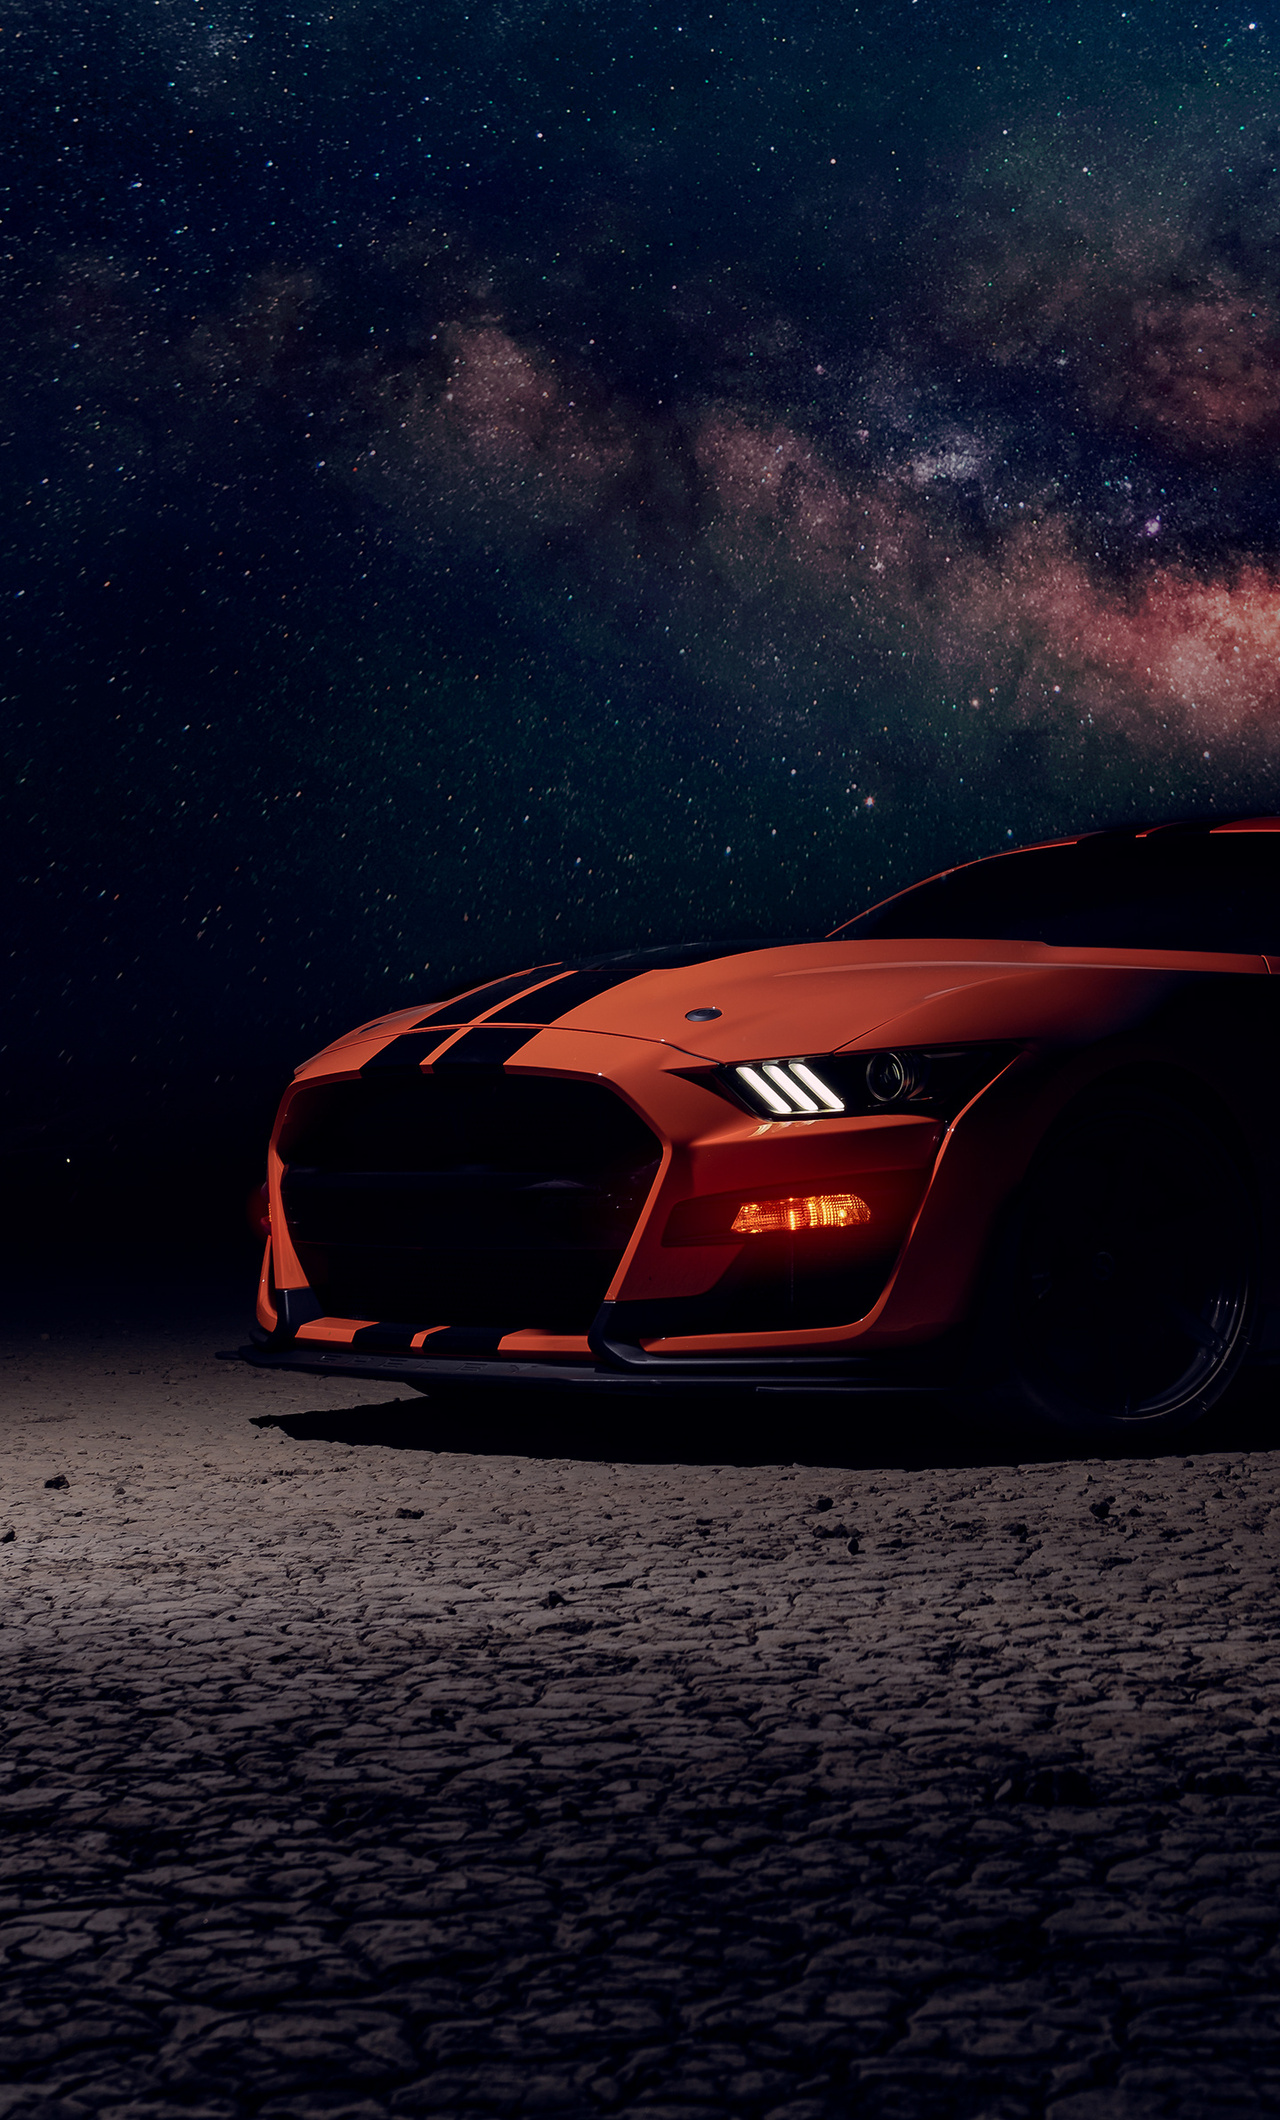 1280x2120 Ford Mustang Shelby Gt500 Sky Lights iPhone 6 ...